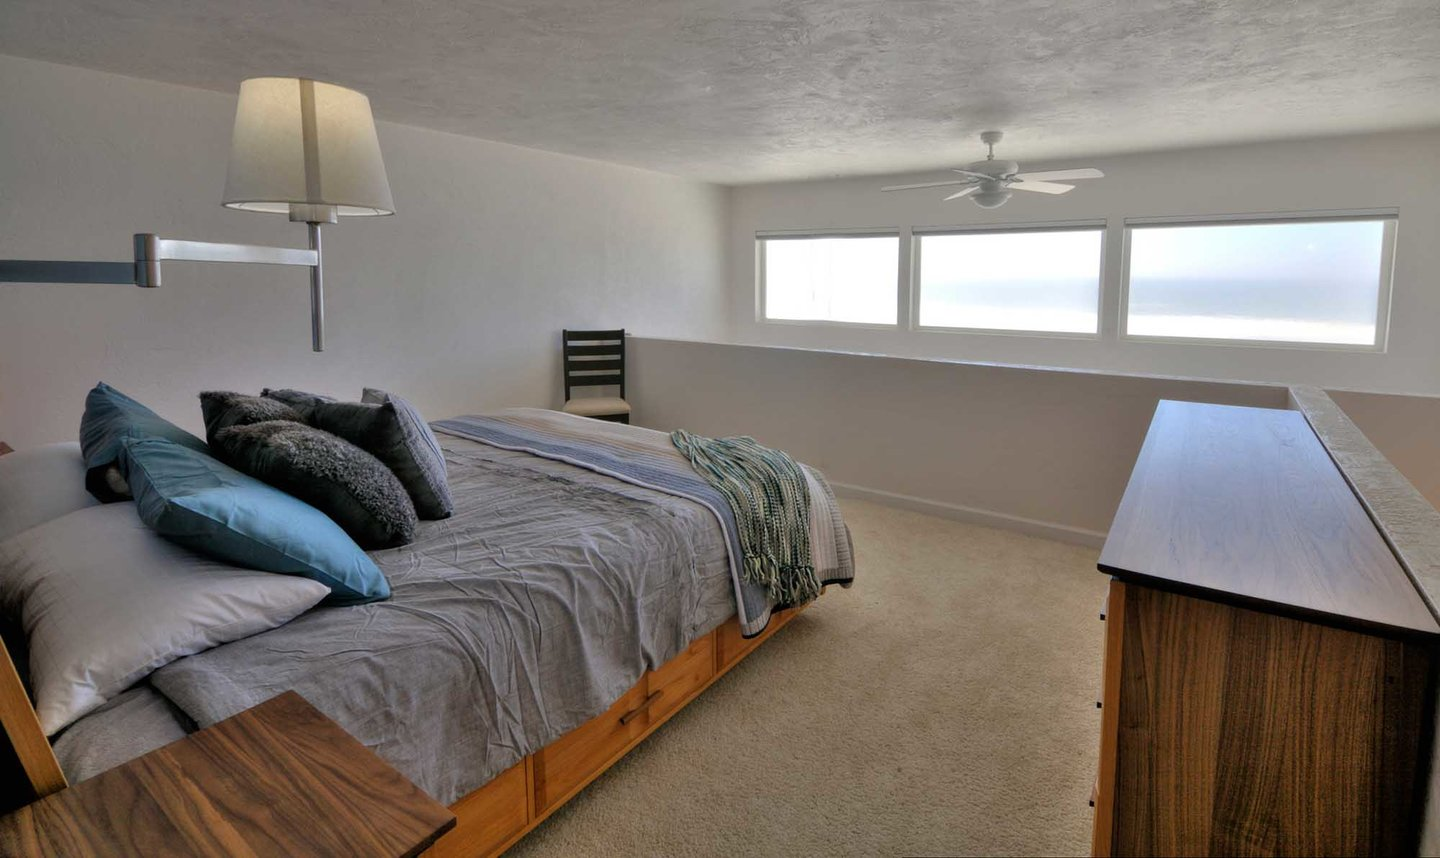 Upstairs is a second loft style bedroom also with en suite bath and ceiling fan.